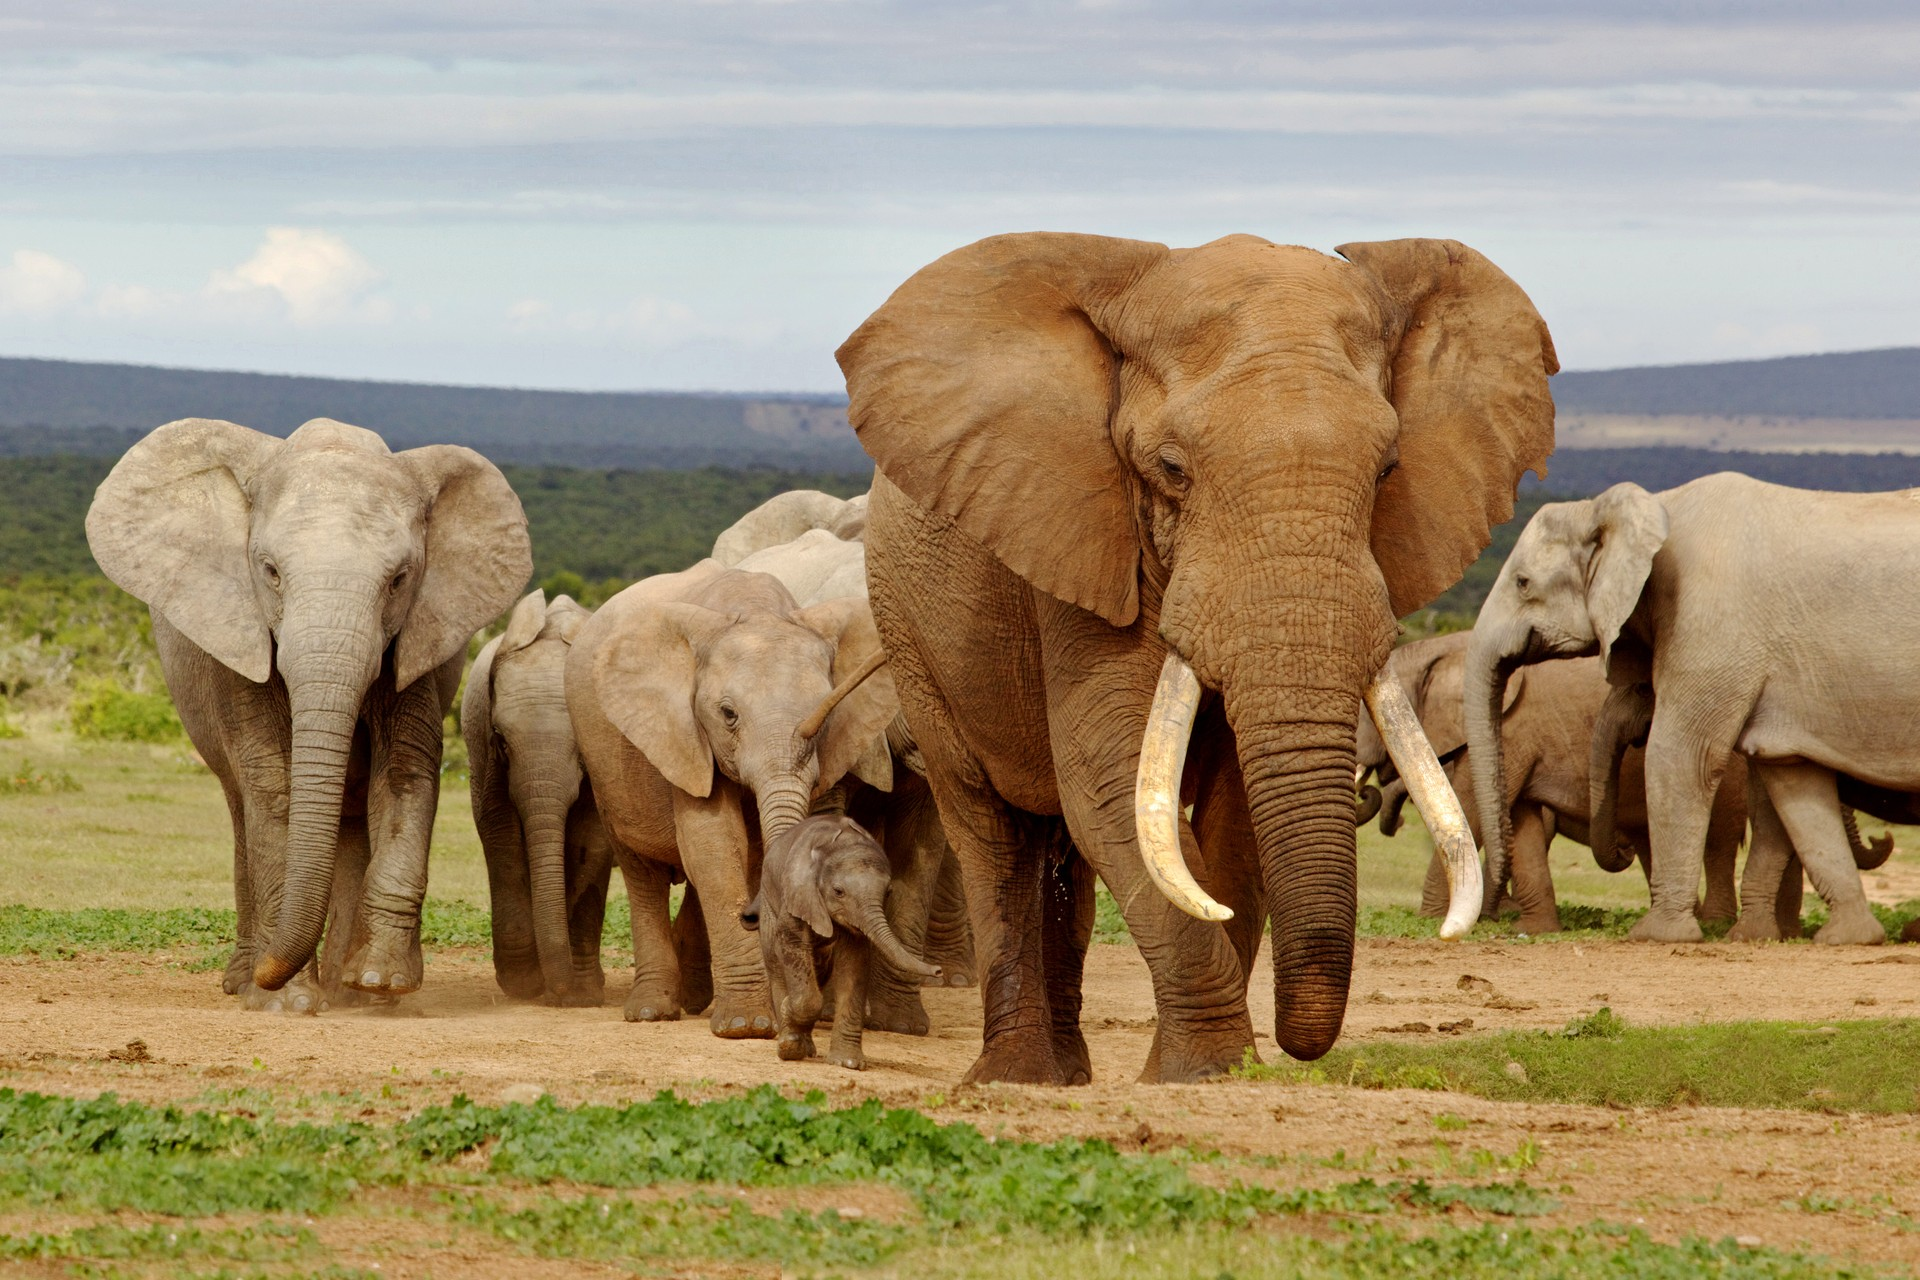 A herd of elephants in South Africa